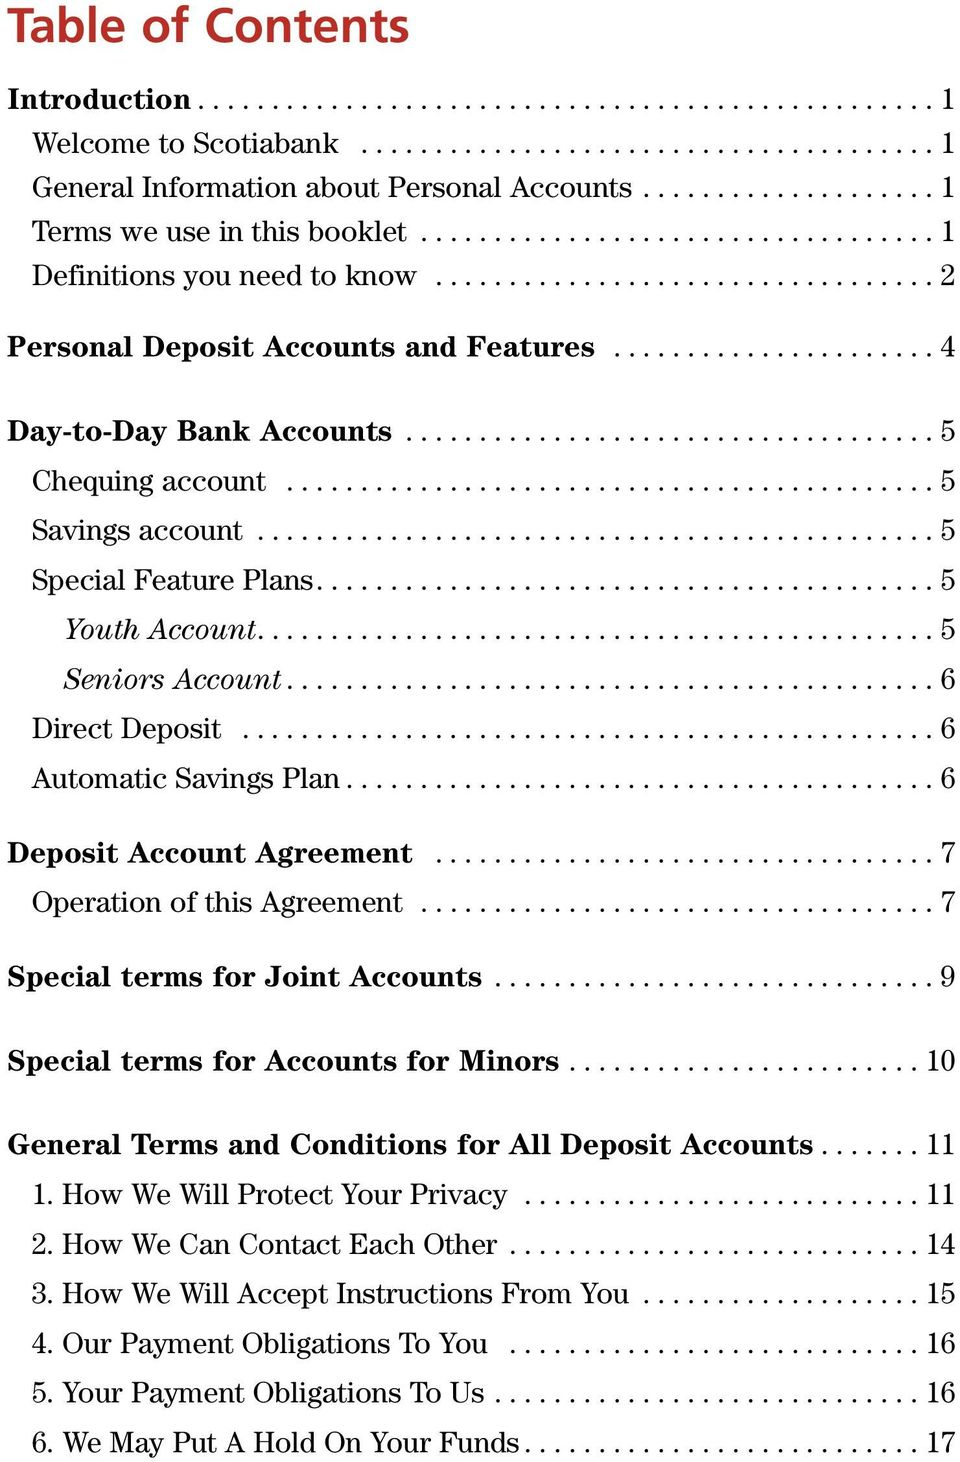 ..................... 4 Day-to-Day Bank Accounts.................................... 5 Chequing account............................................ 5 Savings account.............................................. 5 Special Feature Plans.